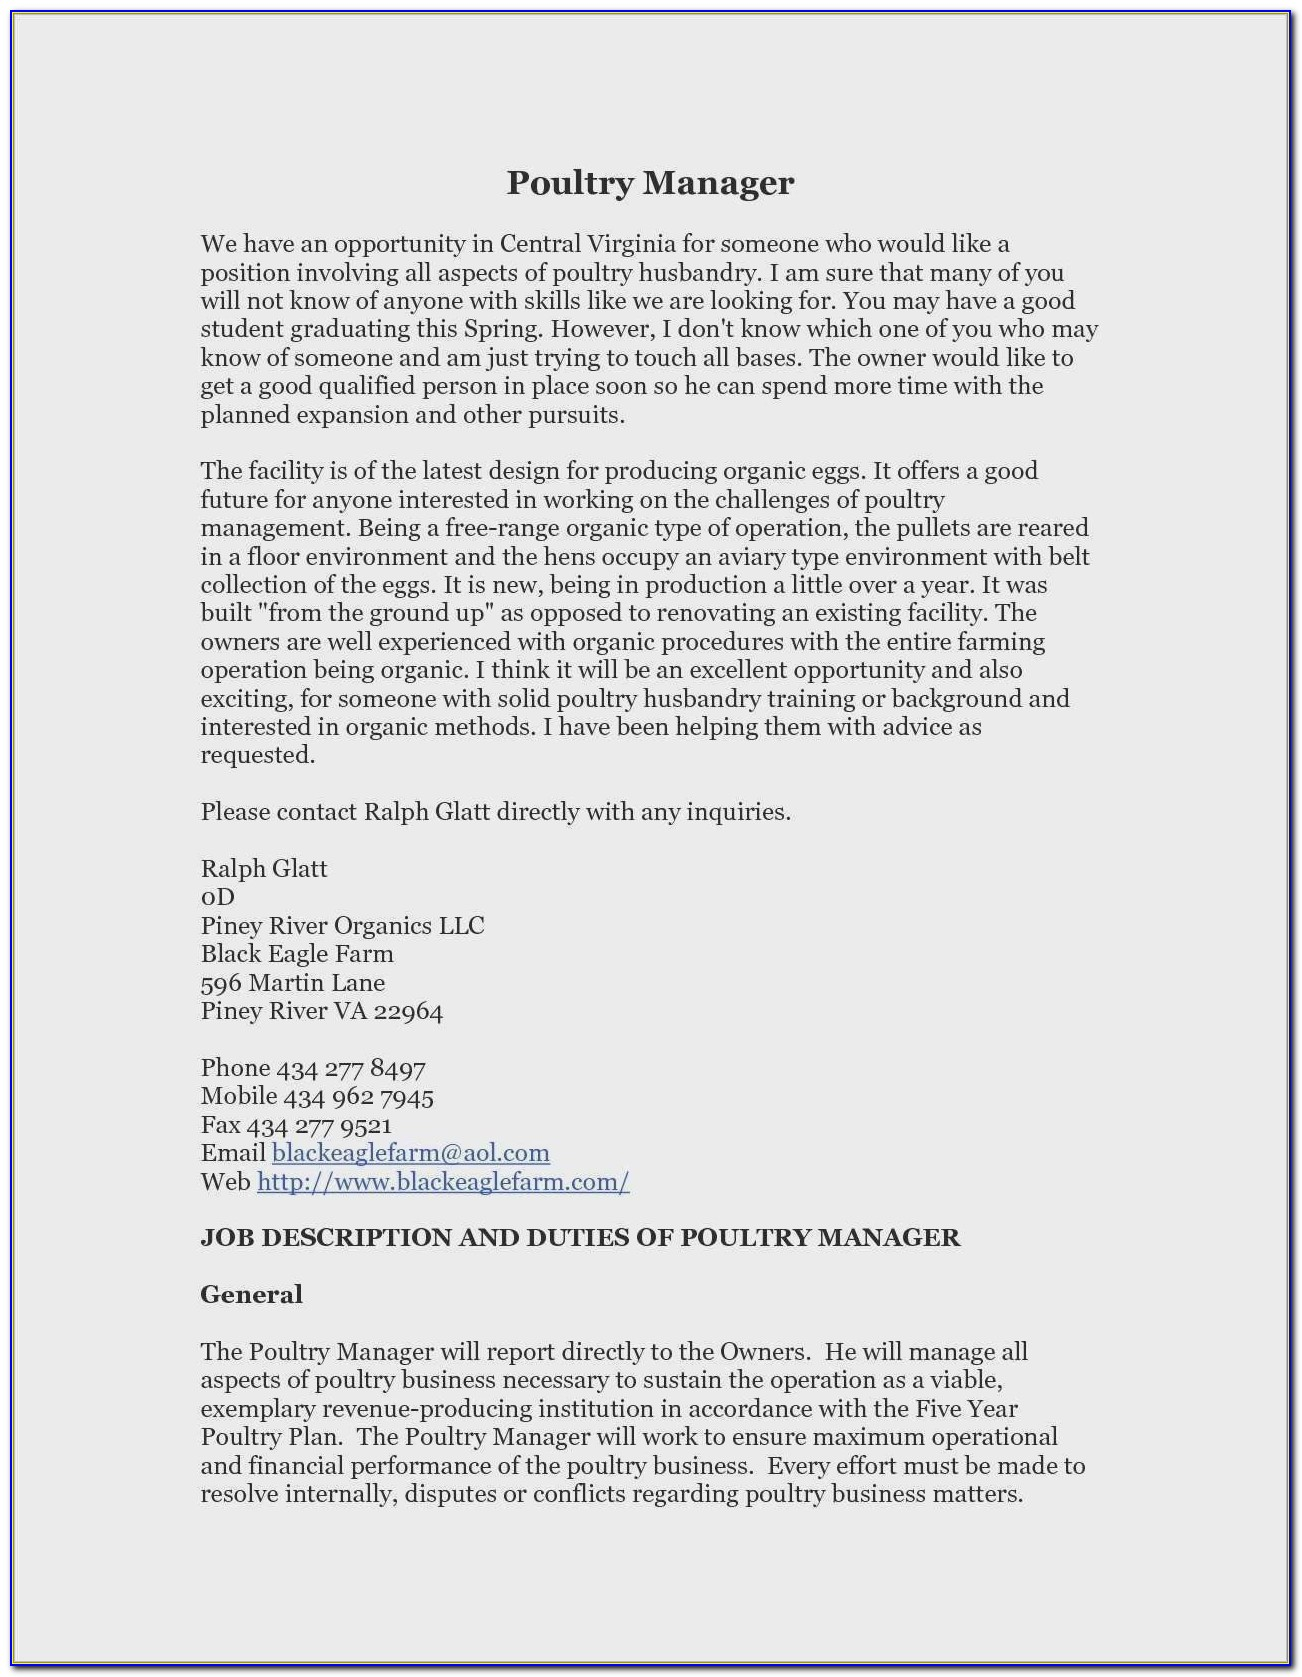 Funeral Obituary Template Word